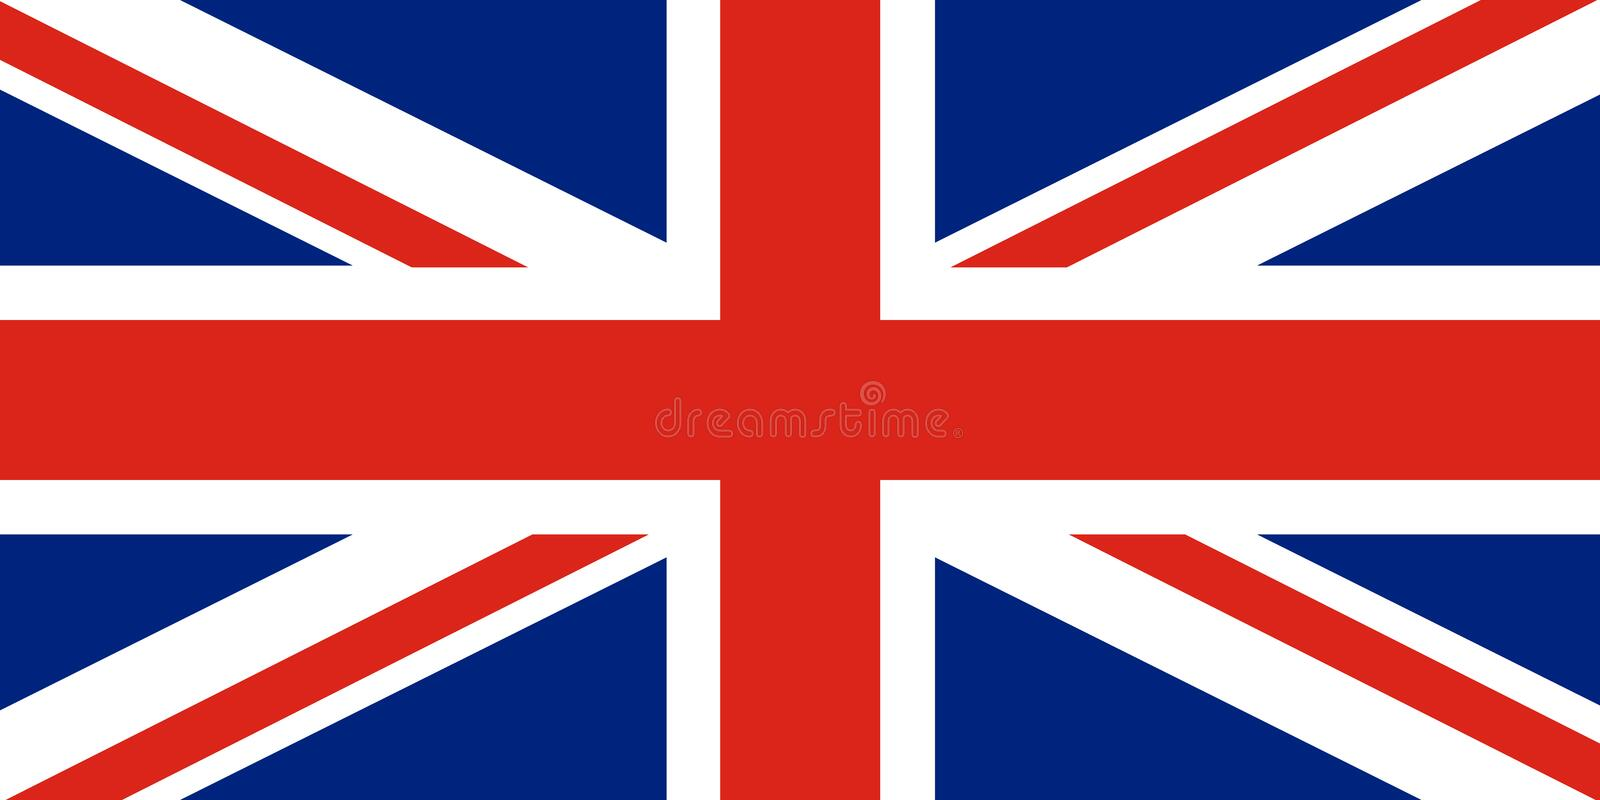 Union Jack. United Kingdom flag. Red cross on combined red and w vector illustration